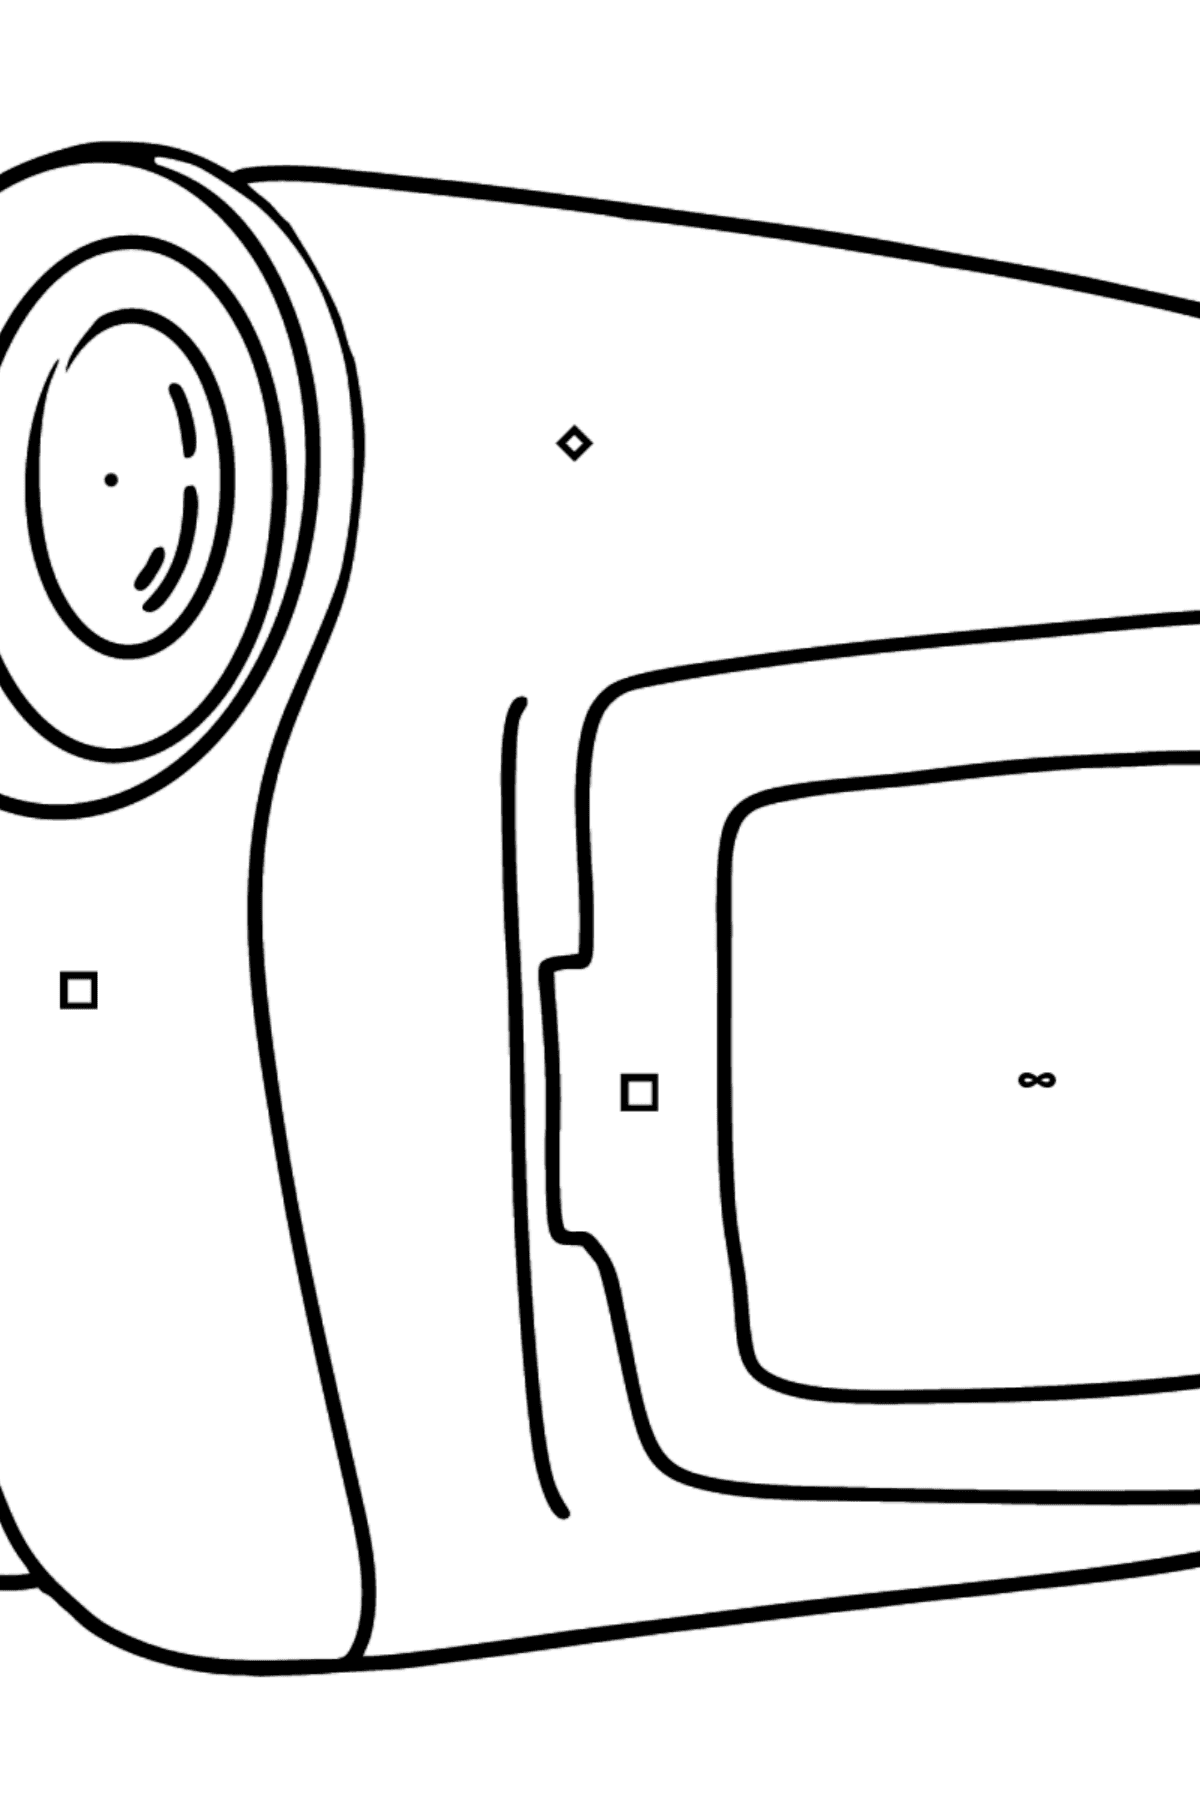 Video camera coloring page - Coloring by Symbols for Kids